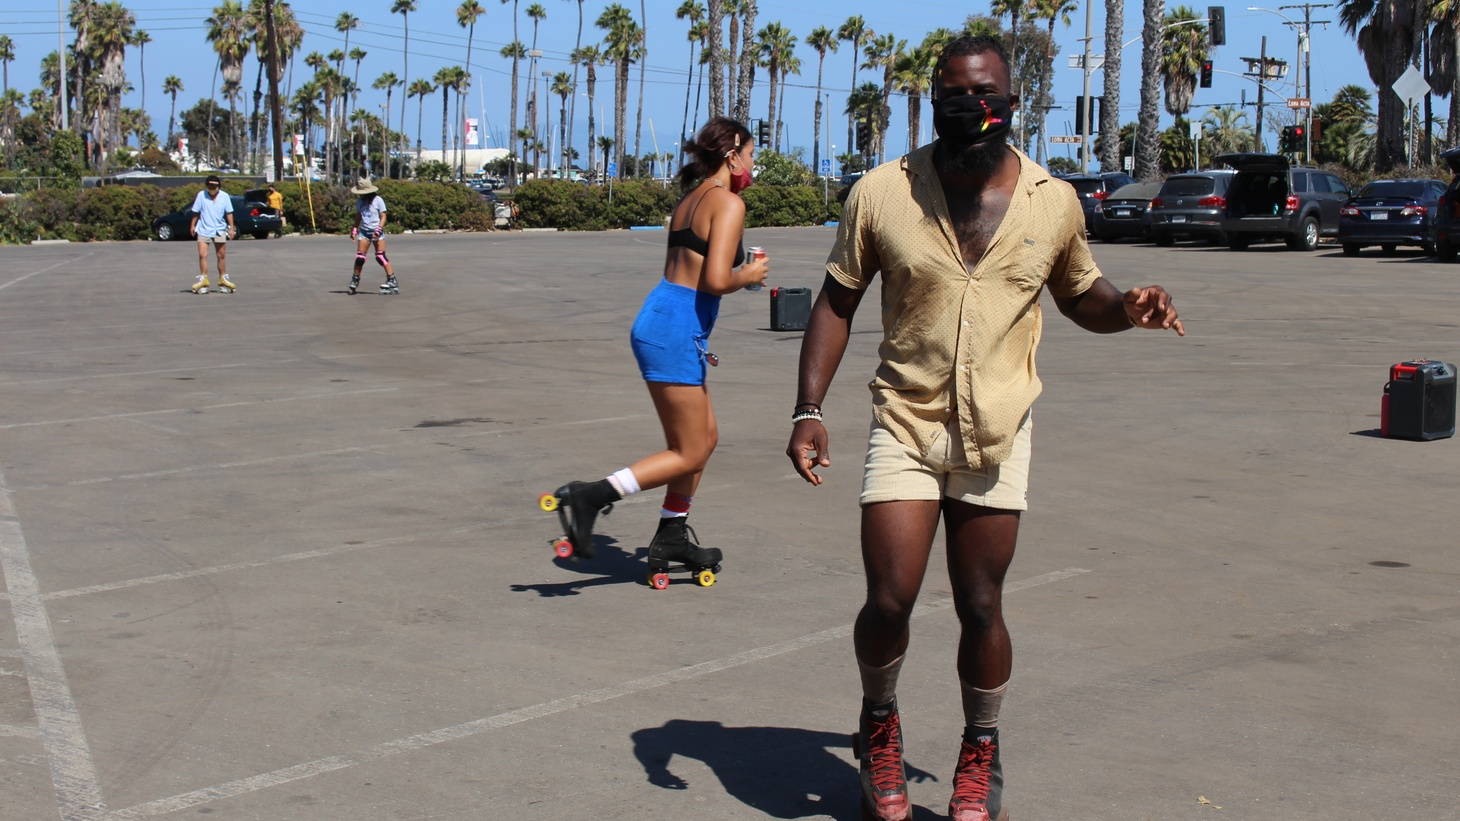 """People from LA, Ojai, Solvang, and San Diego come to Santa Barbara to skate with the SB Rollers. """"I see a lot of individual people doing their own thing, but not really socializing,"""" says Terrance Brown."""